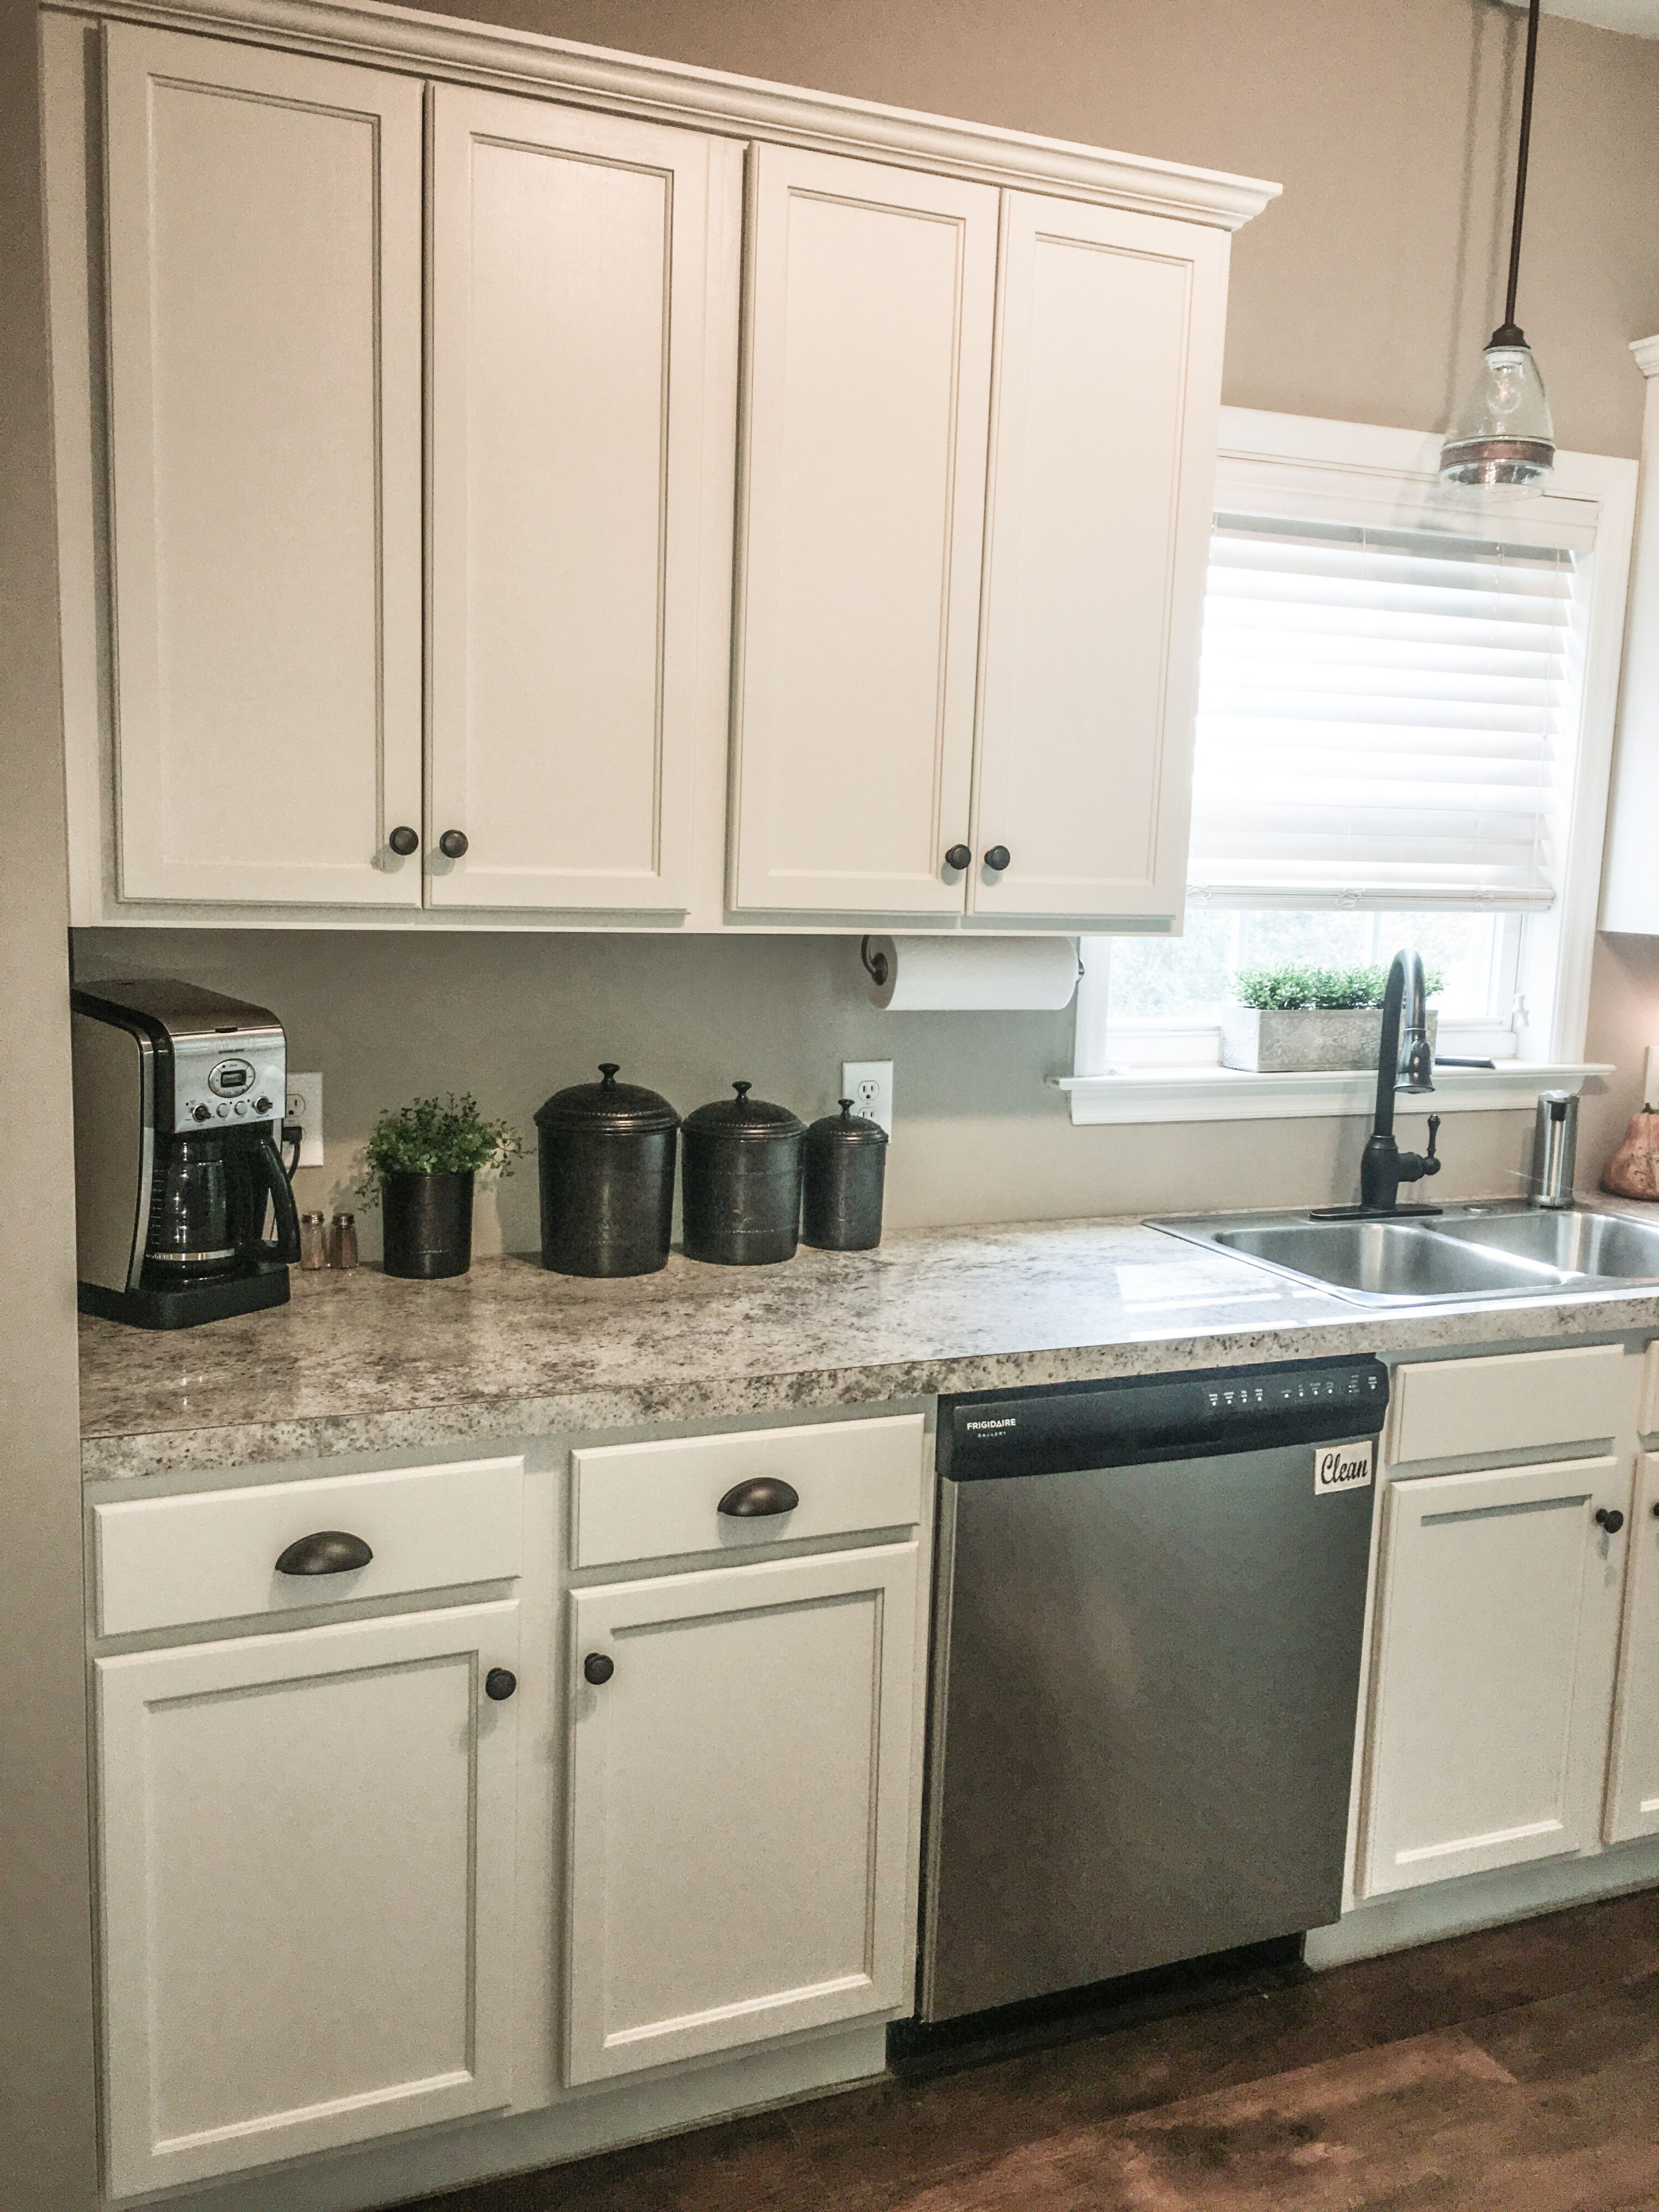 White Kitchen Painted Cabinets Update On A Budget Diy Kitchen Remodel Layout White Kitchen Remodeling Kitchen Remodel